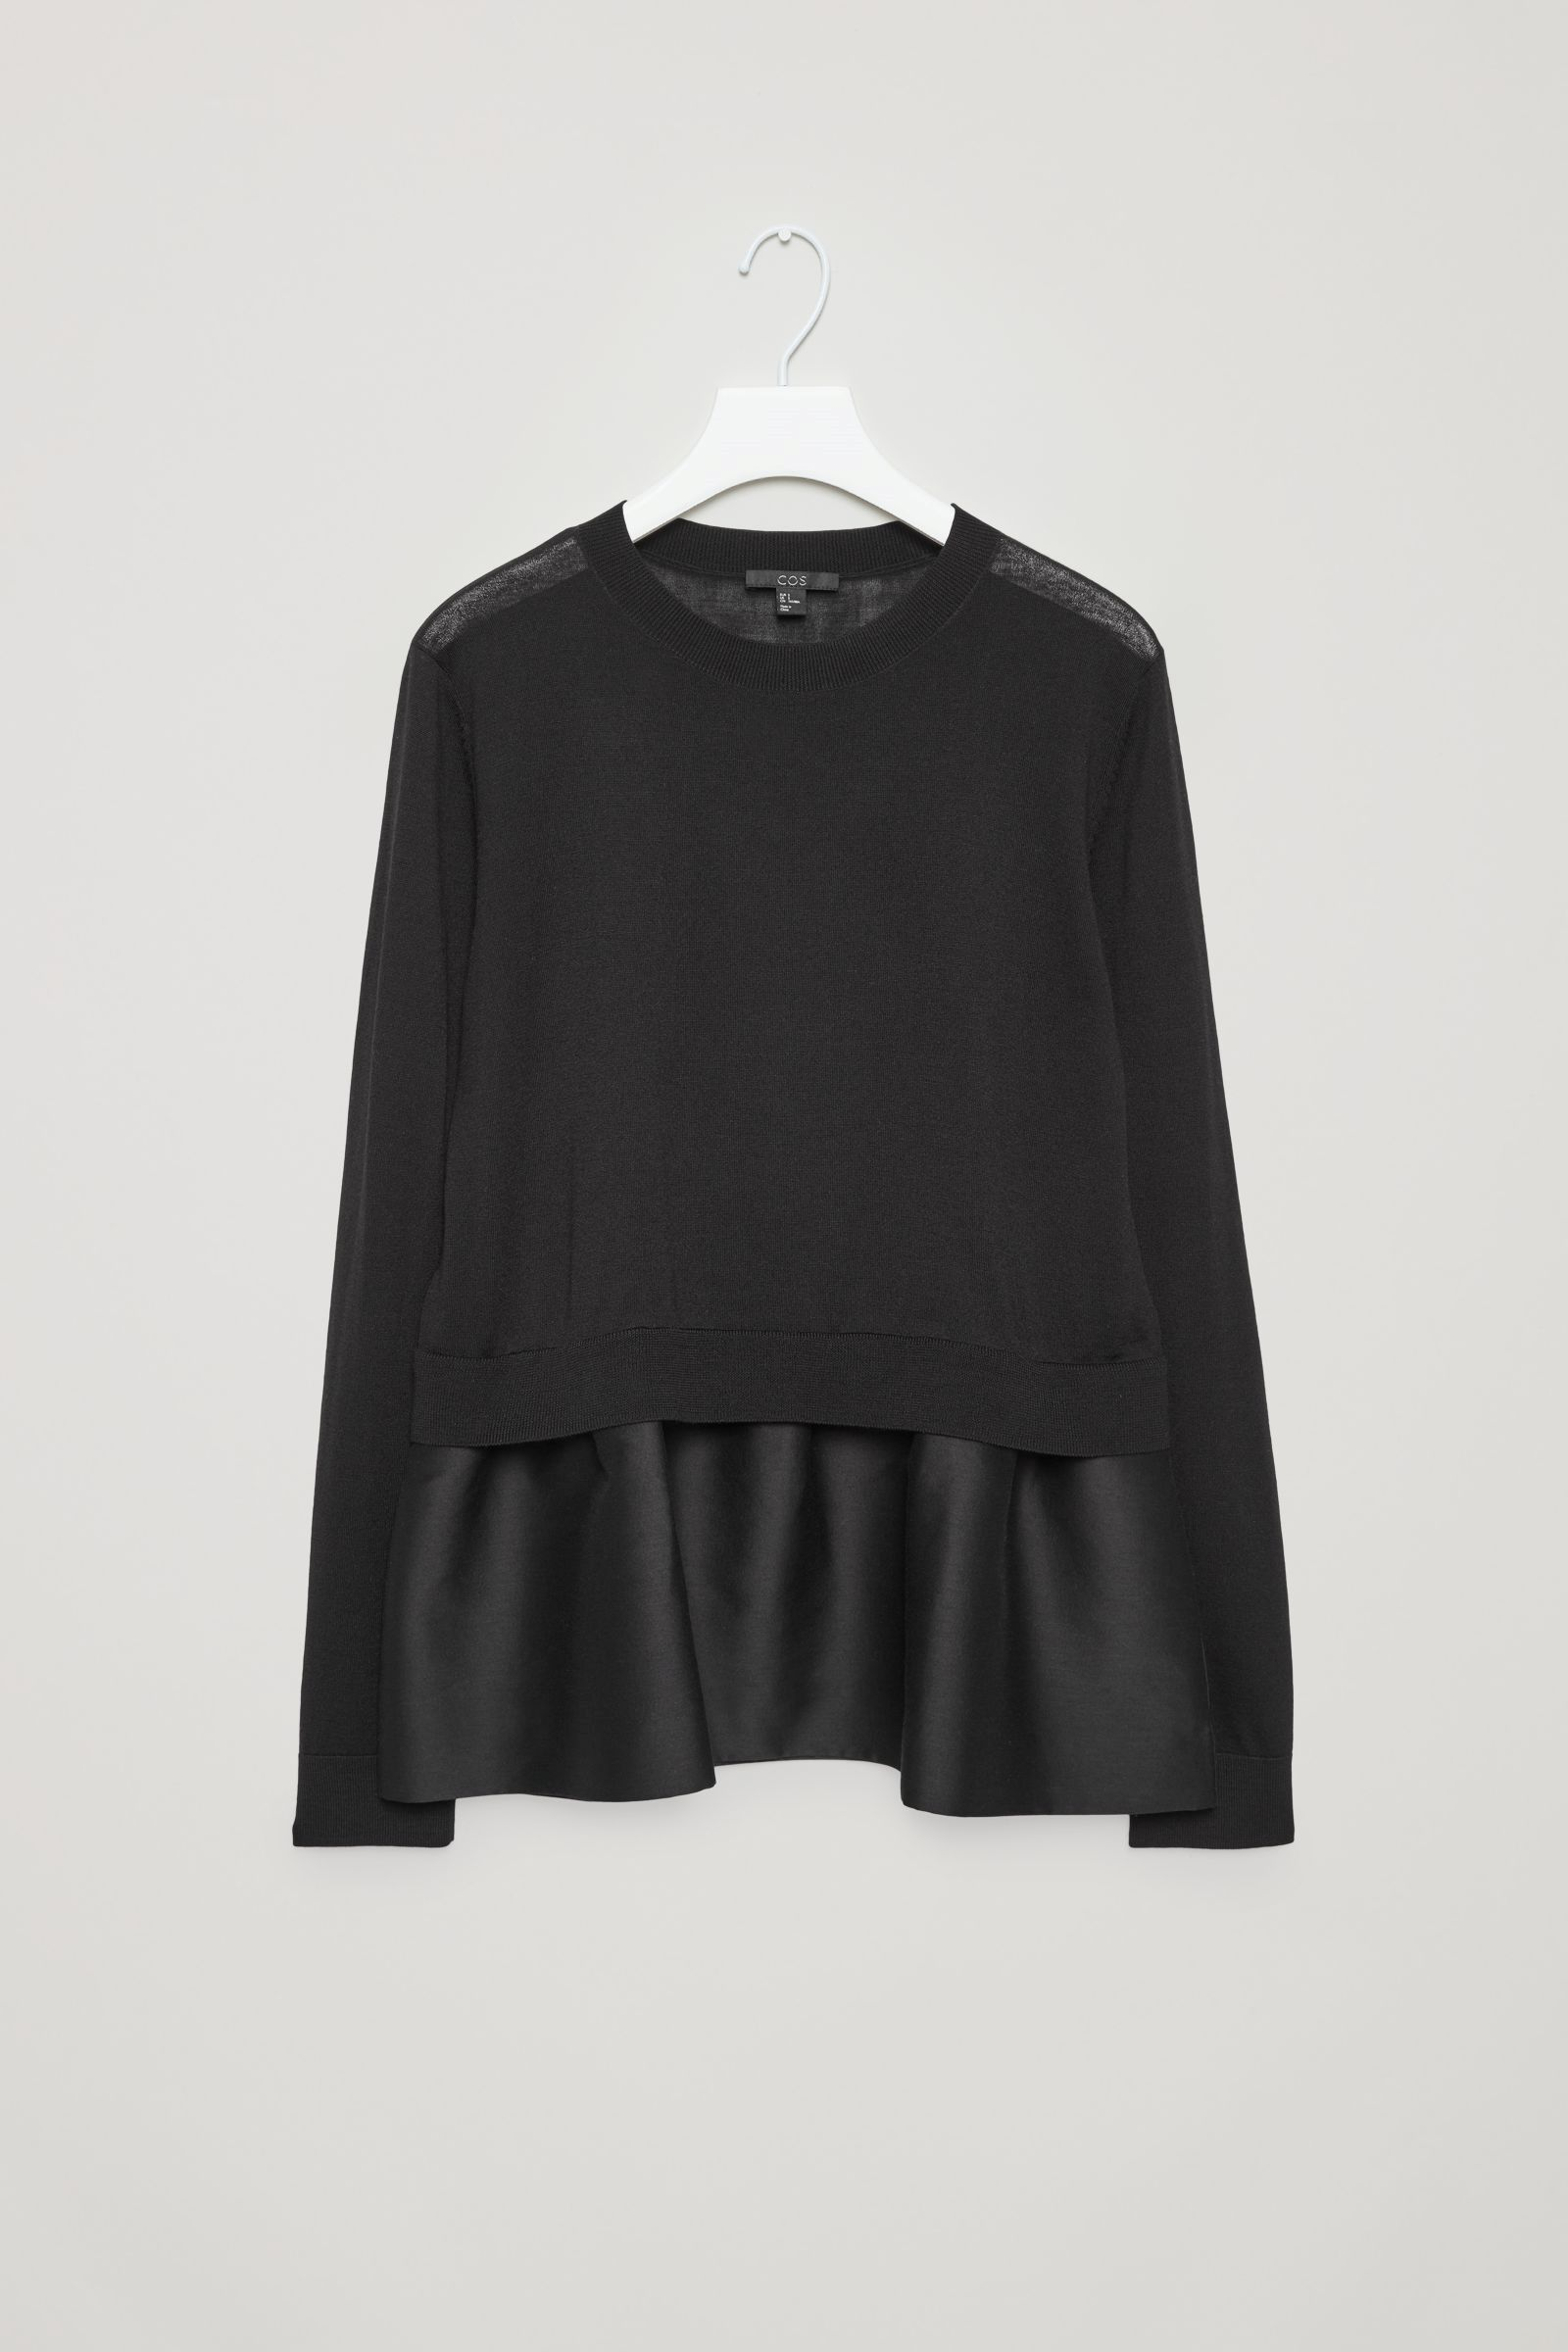 bc55219f3 COS image 4 of Knitted top with woven skirt in Black | shirts ...